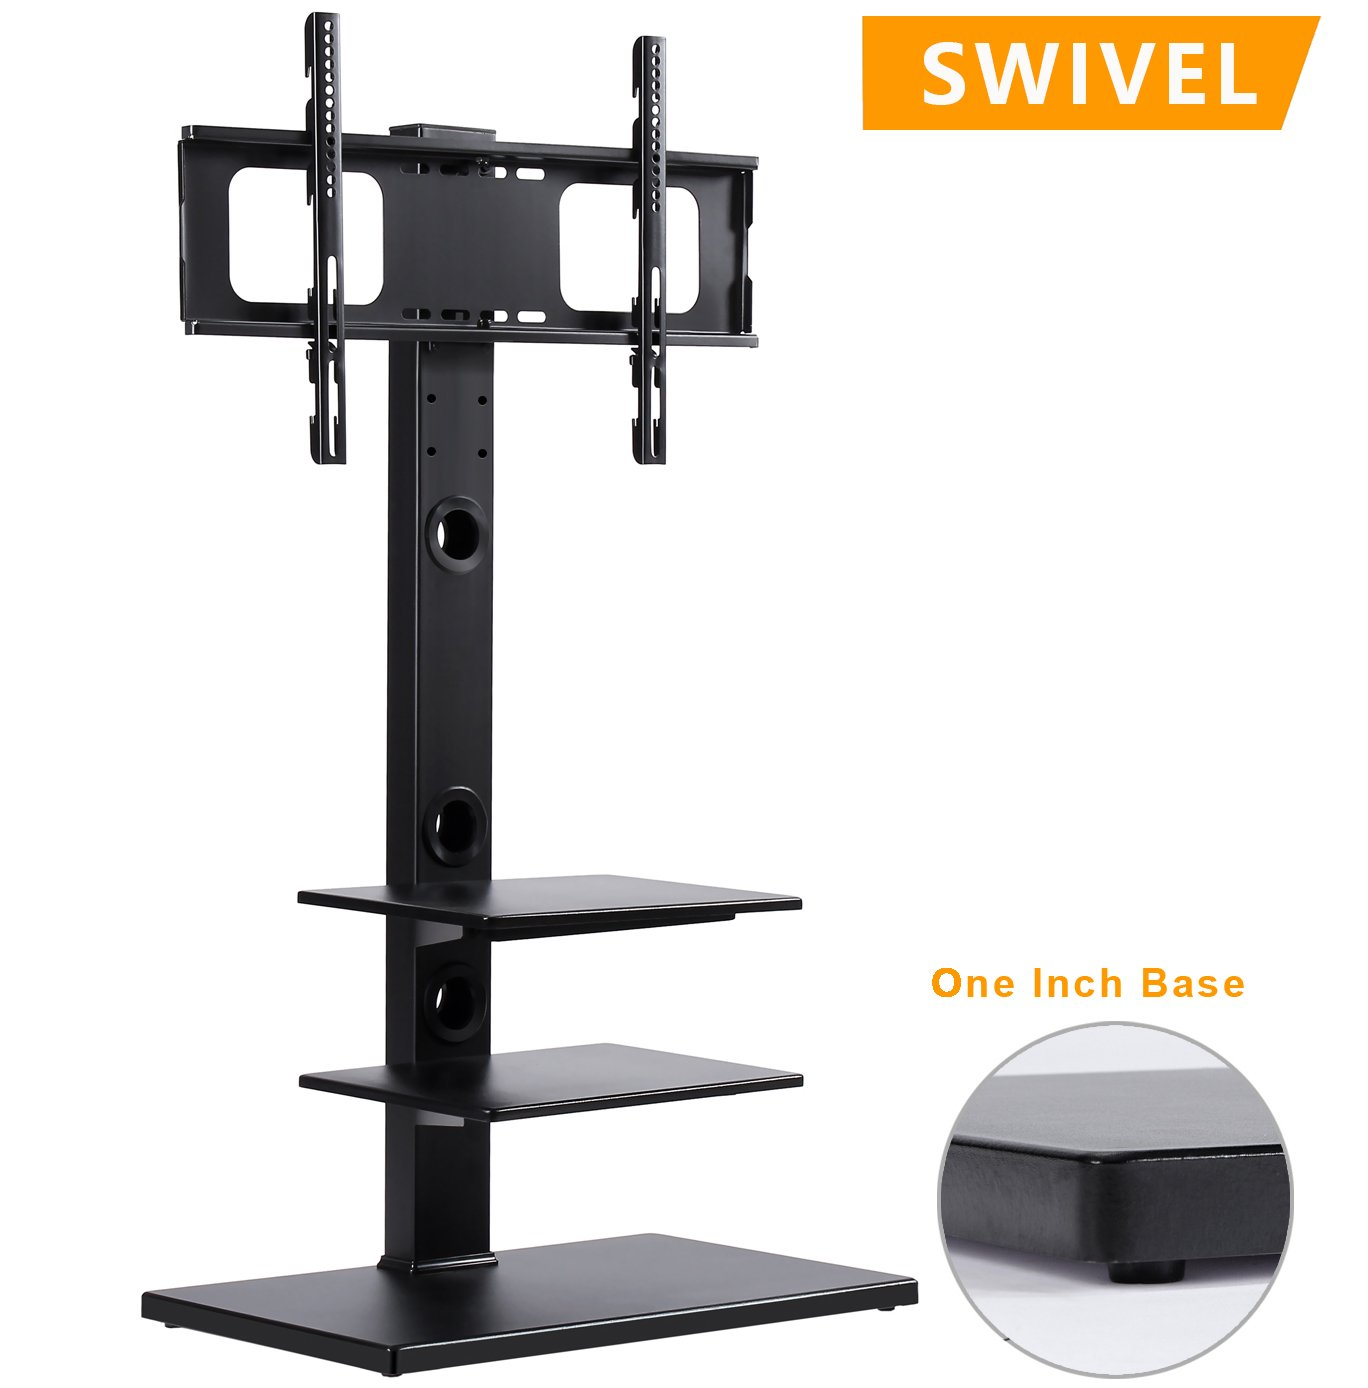 Rfiver Swivel Floor TV Stand with Mount and Three Shelves for 32 to 65 Inches Plasma/LCD/LED TVs, Black TF1002